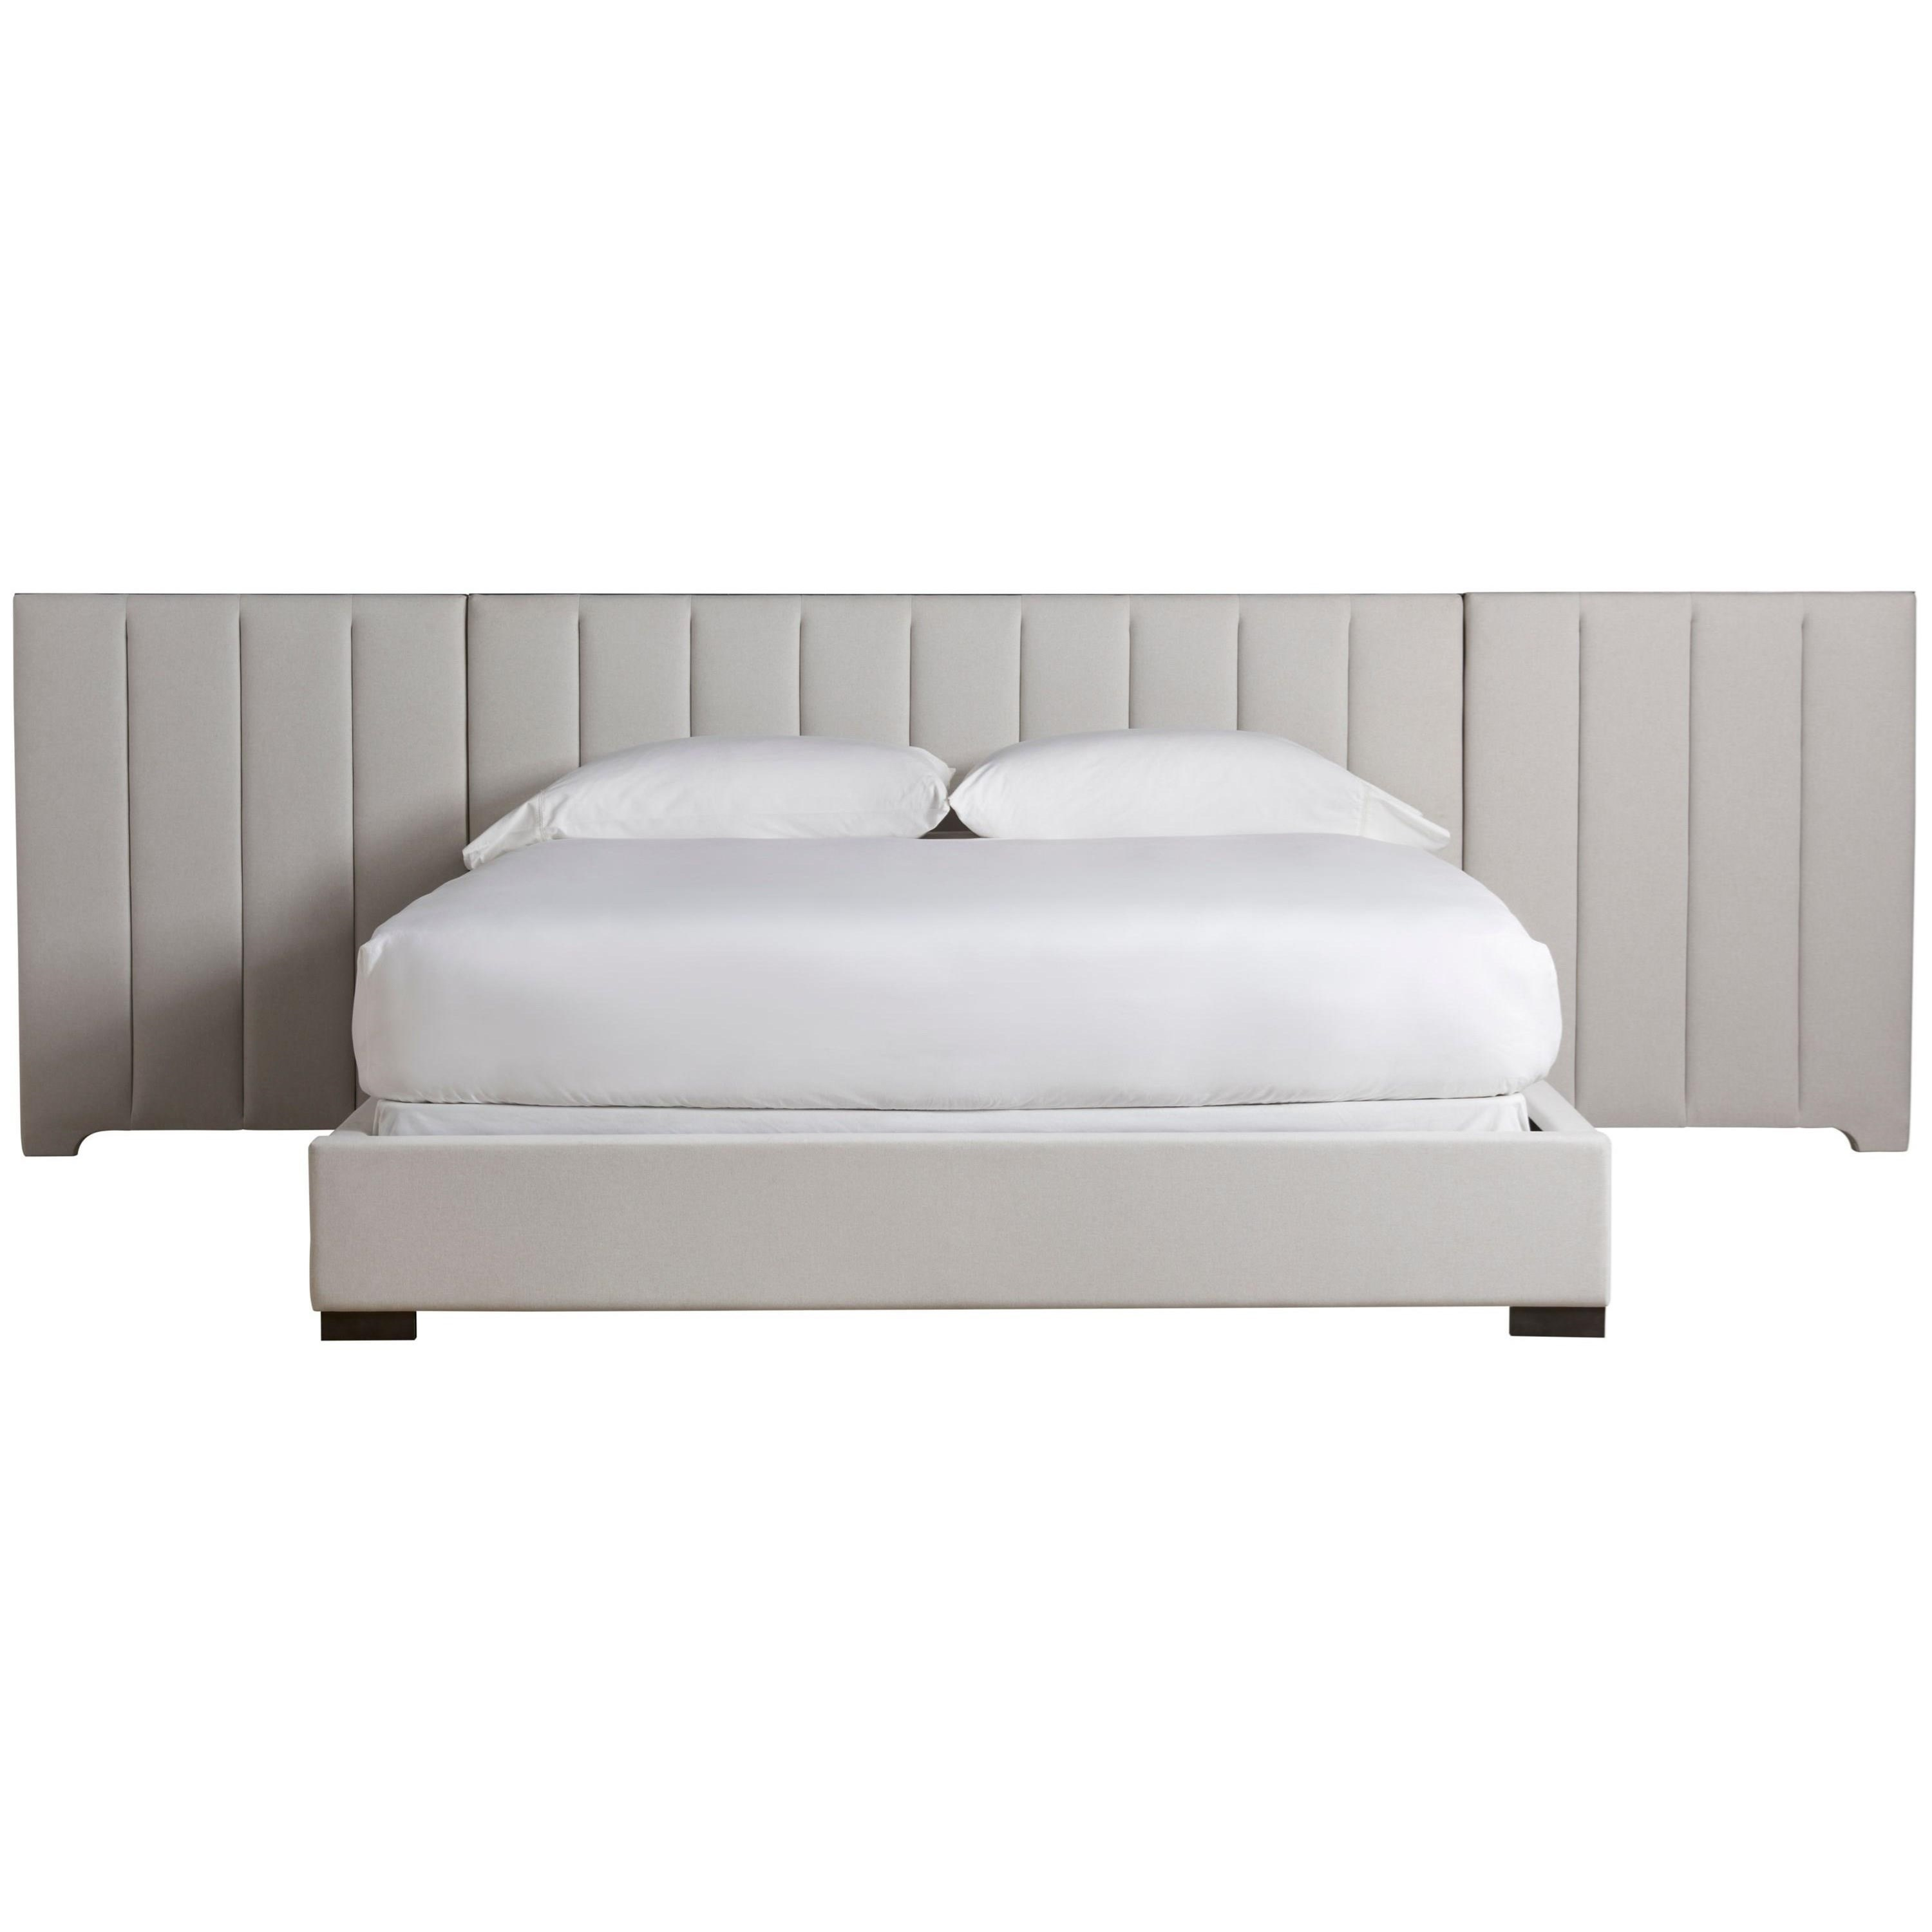 Nina Magon 941 Magon Queen Upholstered Bed w/ Wall by Universal at Powell's Furniture and Mattress